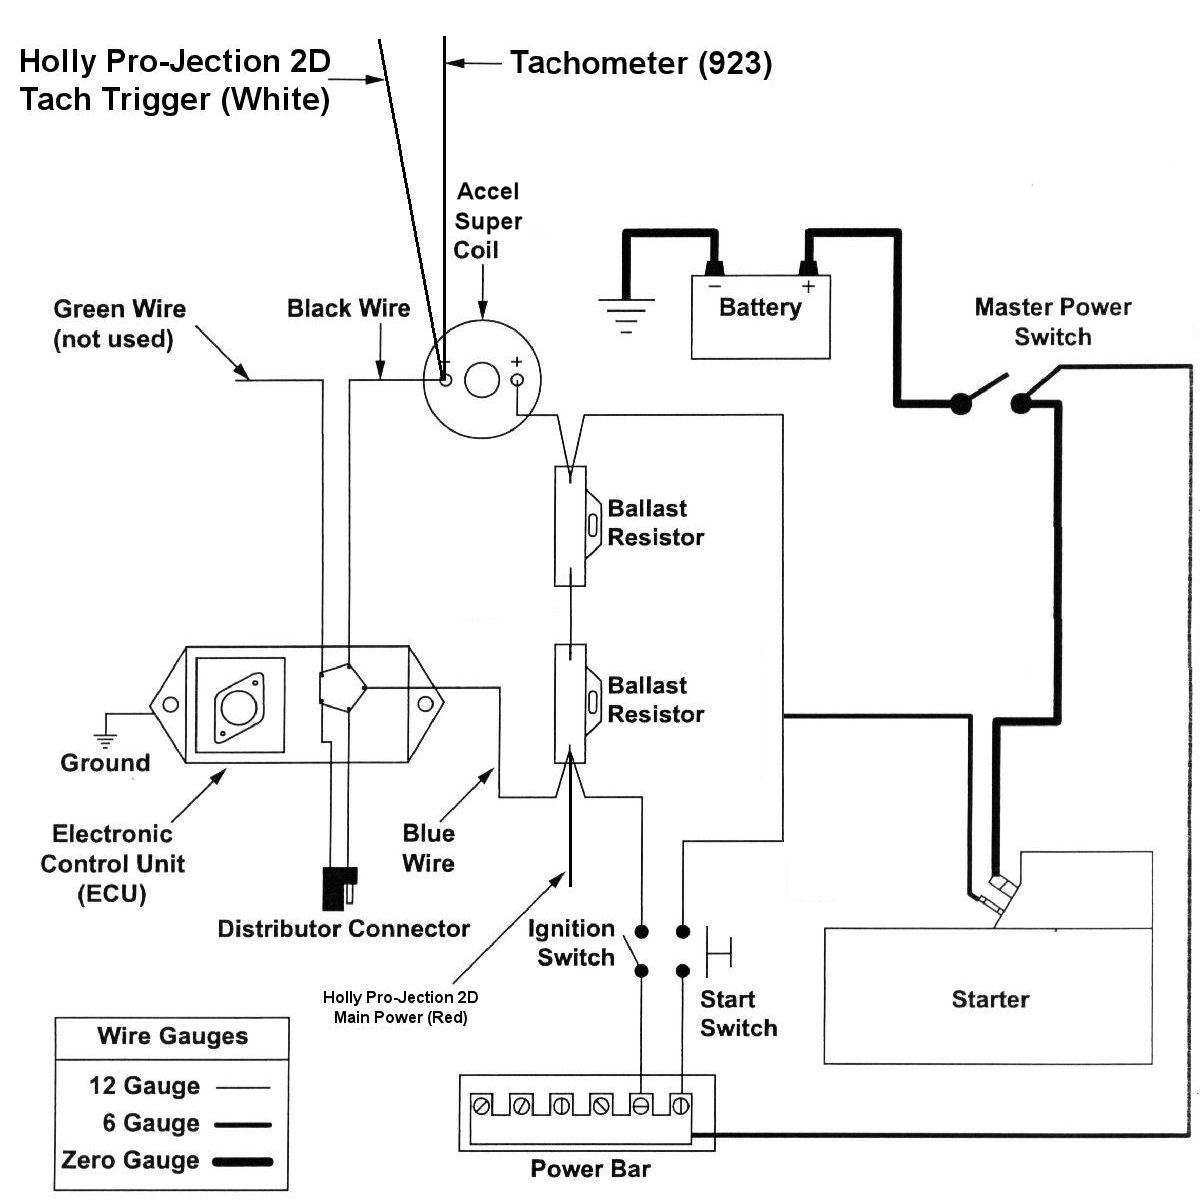 DIAGRAM] Accel Dual Point Distributor Wiring Diagram FULL Version HD  Quality Wiring Diagram - HOMENETWORKDIAGRAM.ABERCROMBIEANDFITCHPACHER.FRDiagram Database